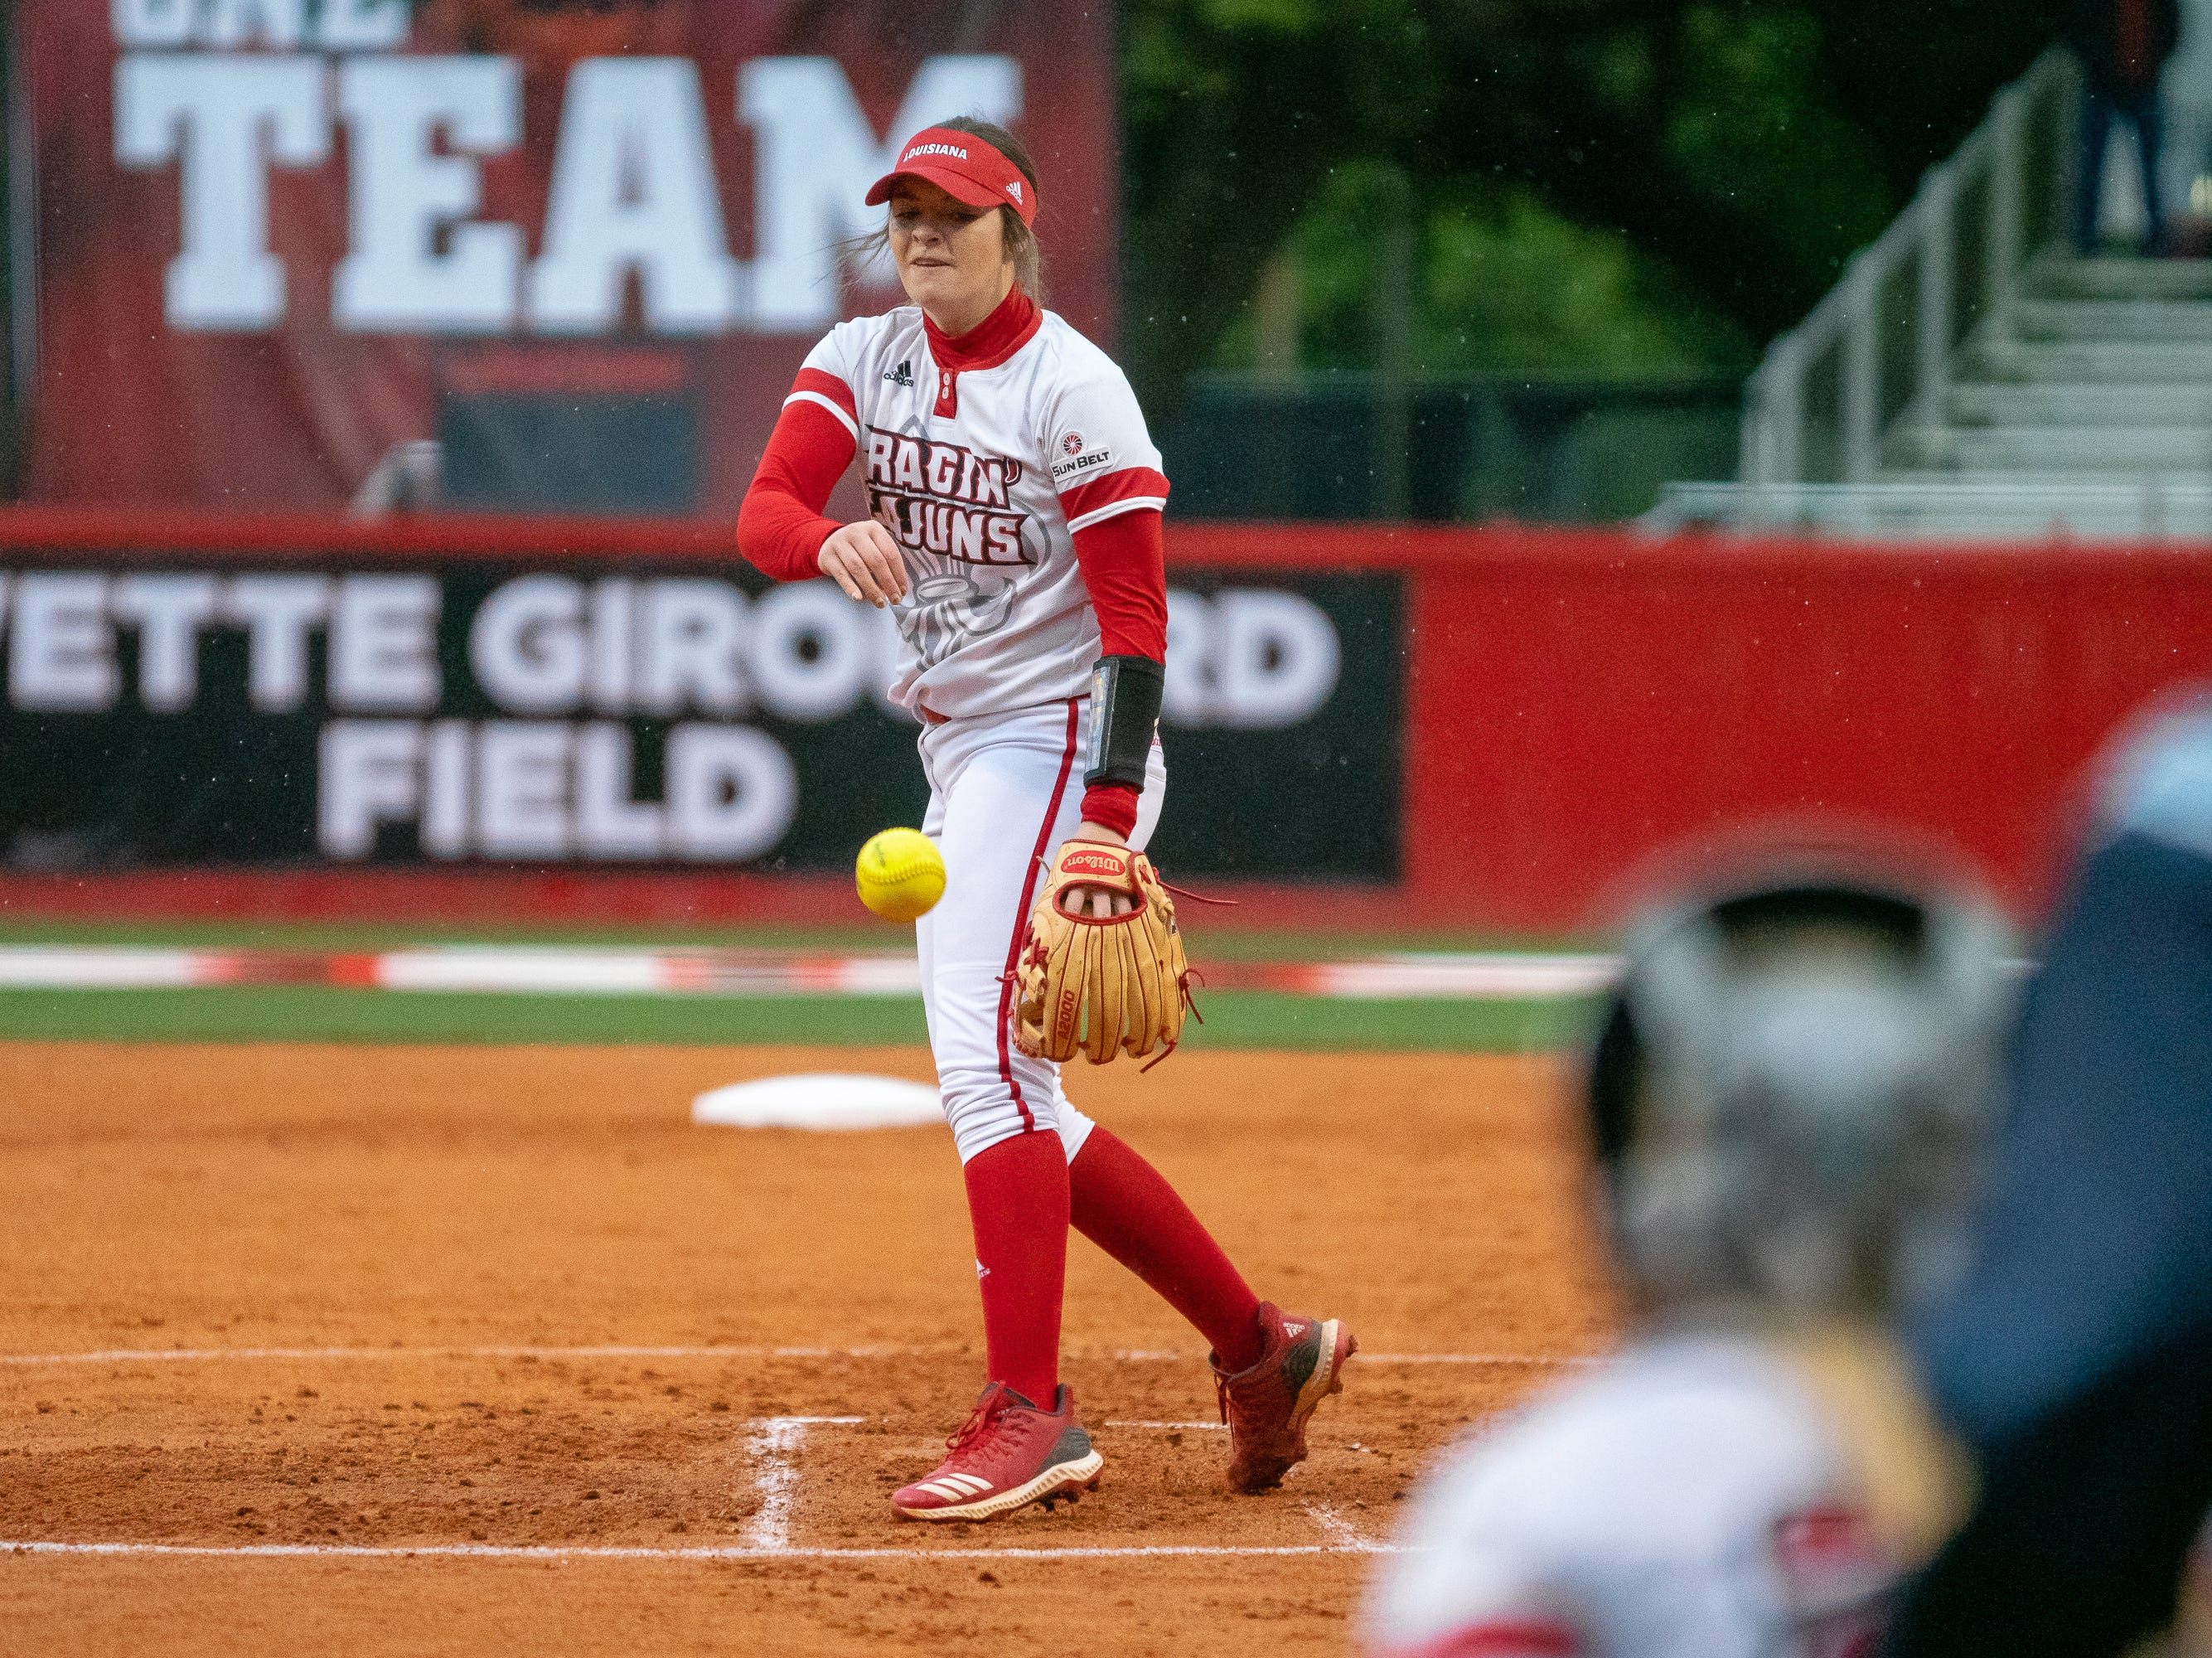 UL's Summer Ellyson throws a pitch to the batter as the Ragin' Cajuns take on the Troy Trojans at Lamson Park, Yvette Girouard Field on Friday, March 15, 2019.